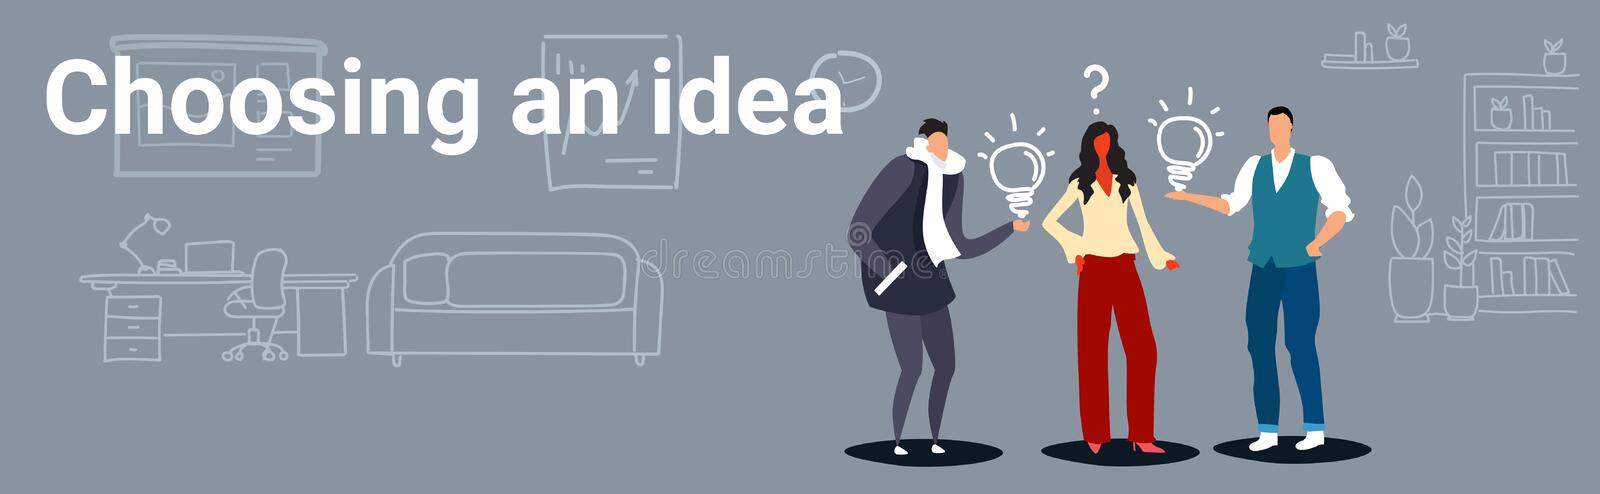 Businesspeople holding light bulbs men proposing creative business plan to woman boss choosing idea concept successful. Teamwork office interior sketch doodle vector illustration